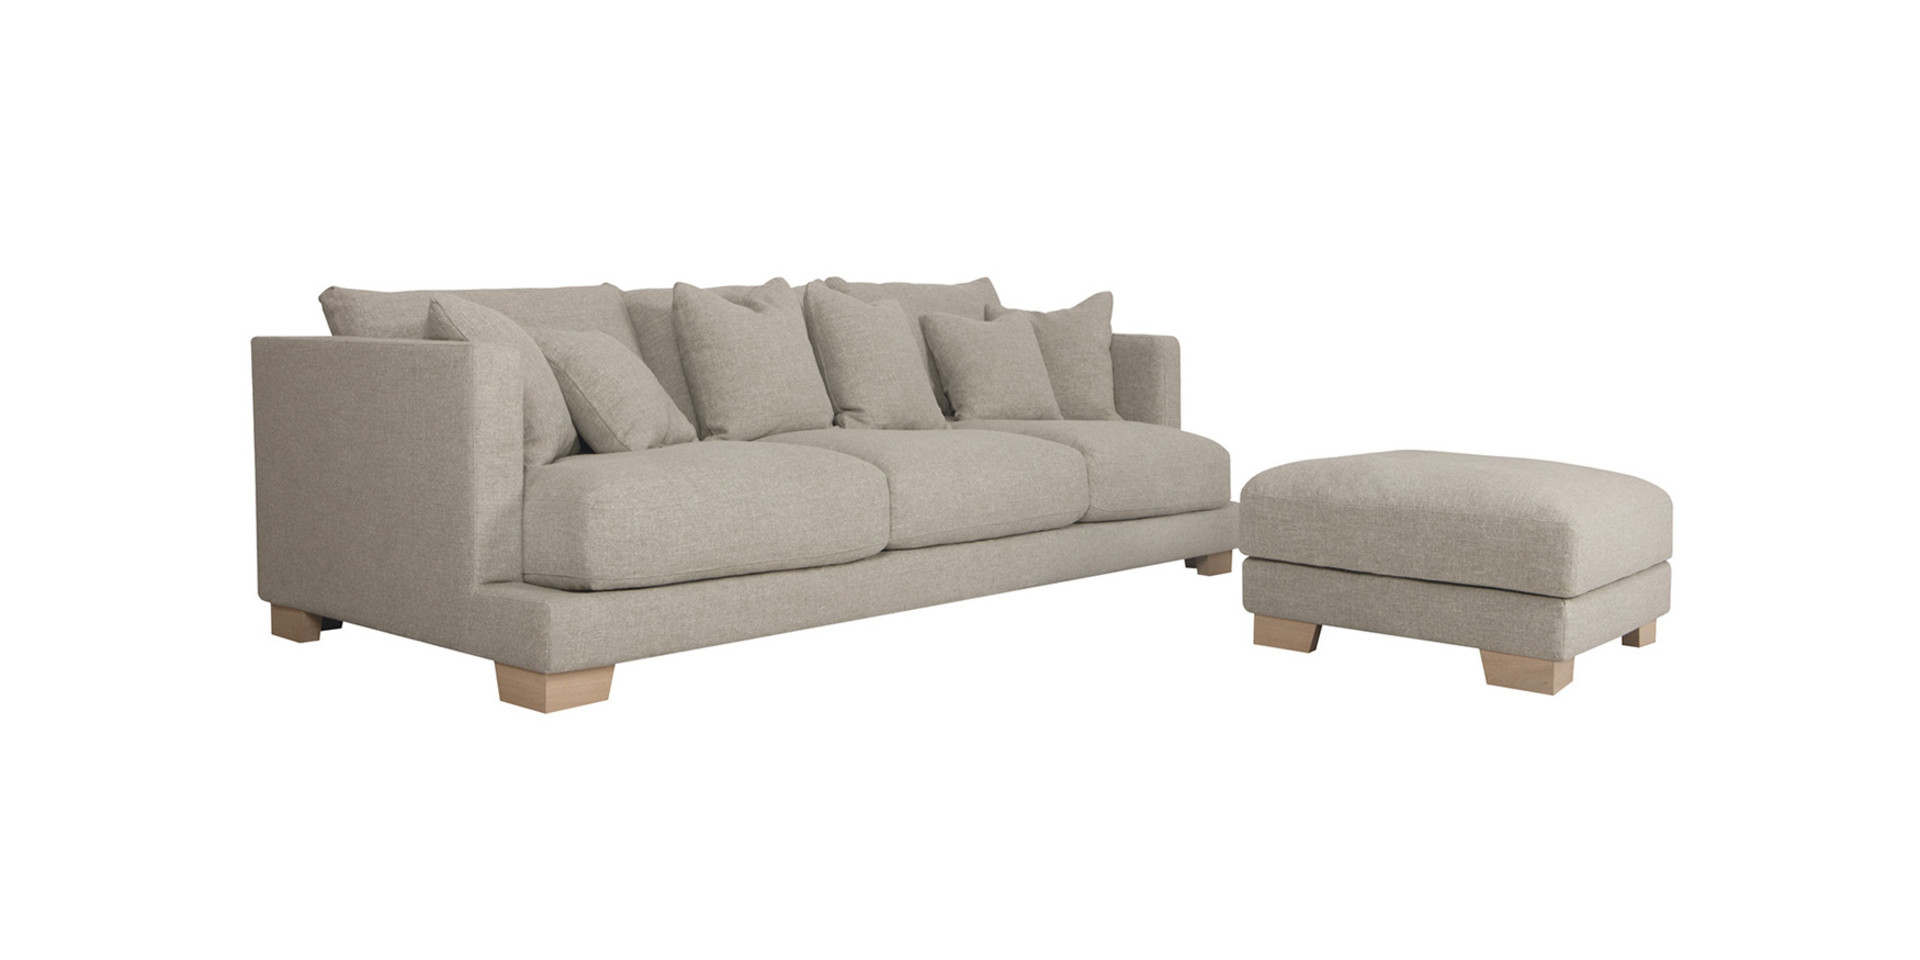 sits-colorado-pouf_4seater_footstool_Q425_laundered8_earth_3